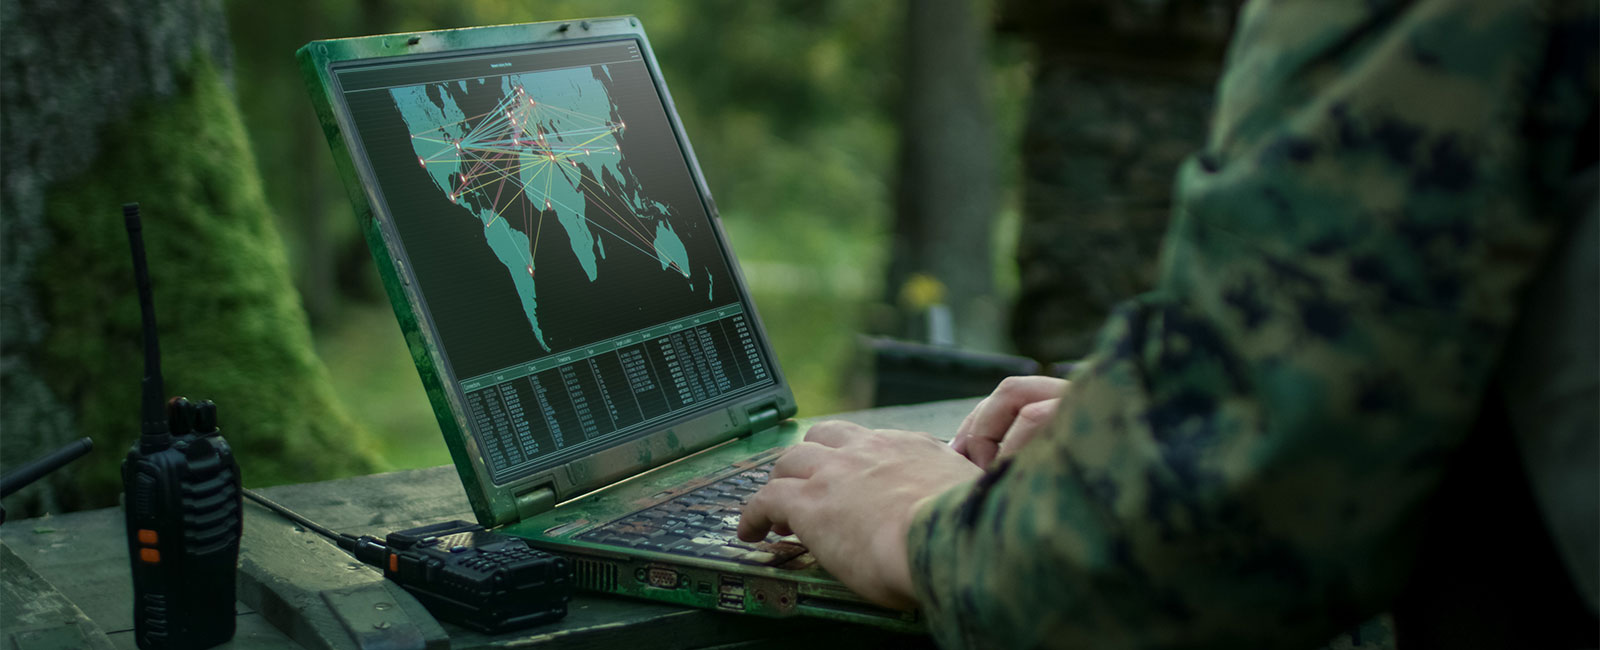 Soldiers using military laptop in forest